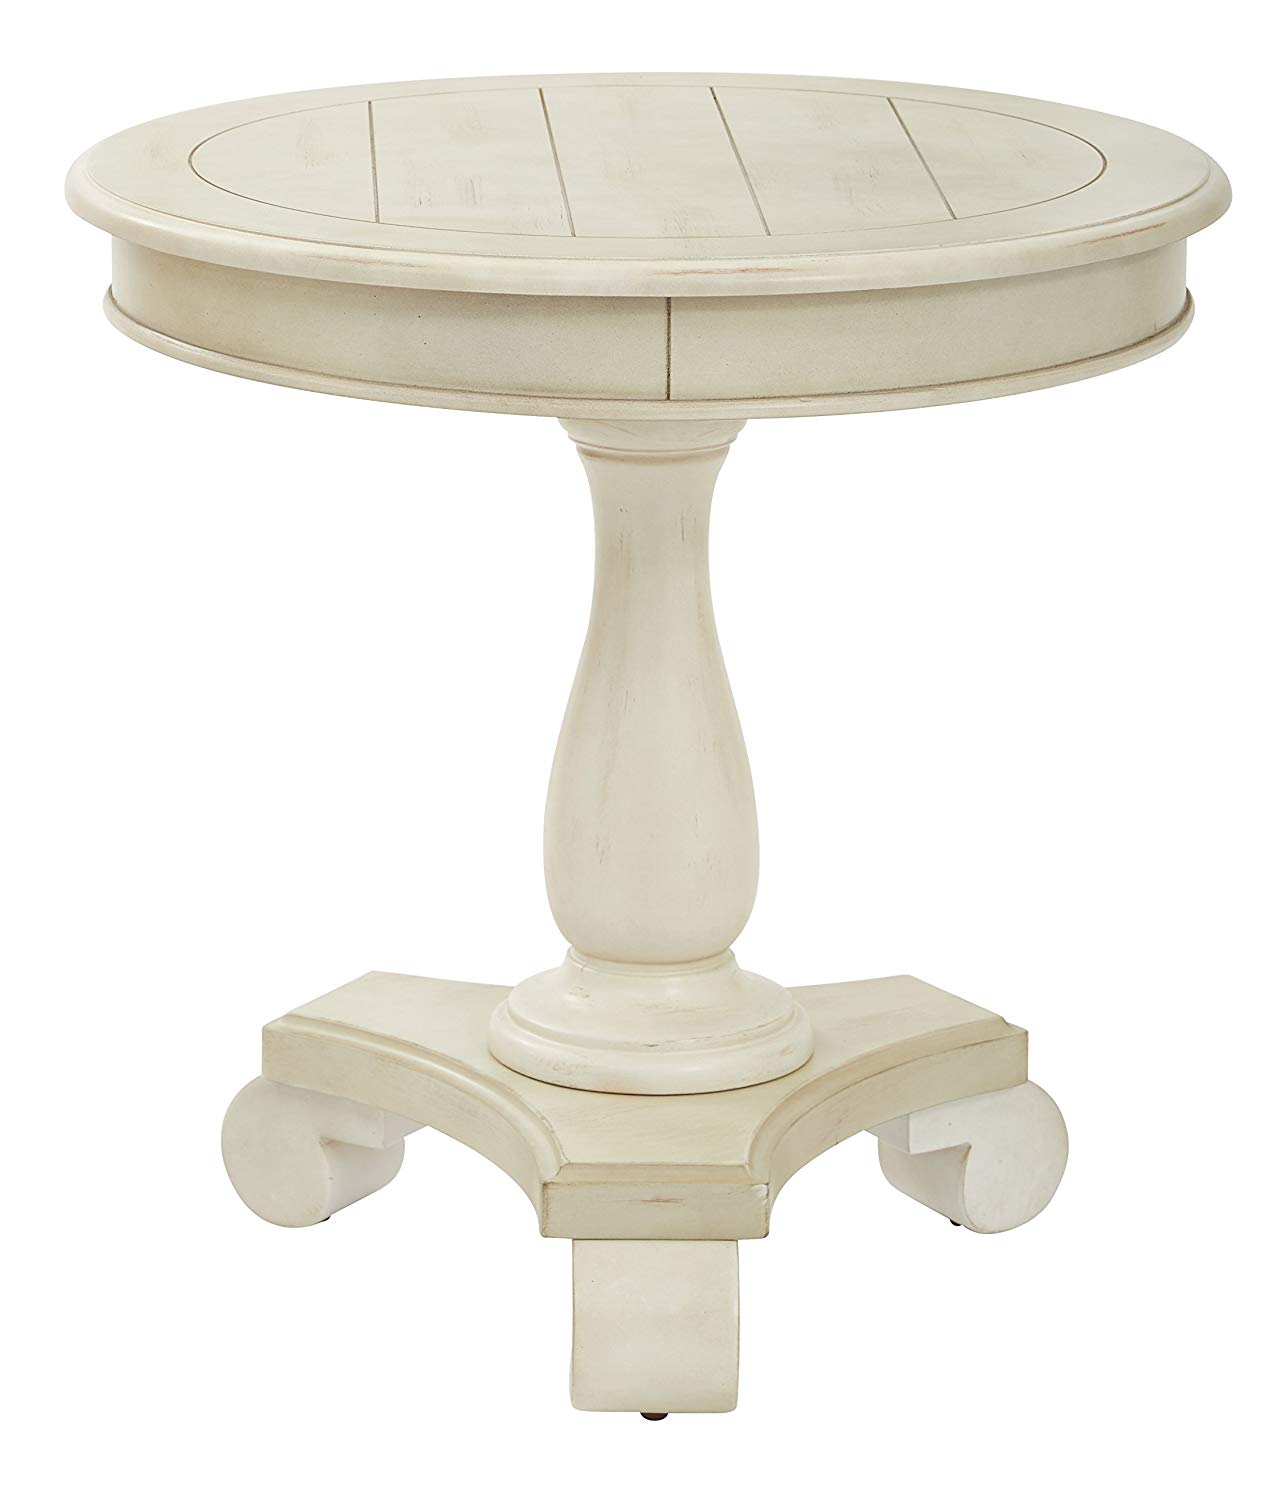 inspired bassett avlat osp avalon round low accent table antique beige kitchen dining vintage asian lamps stand bar tables with charging station west elm set black wood coffee